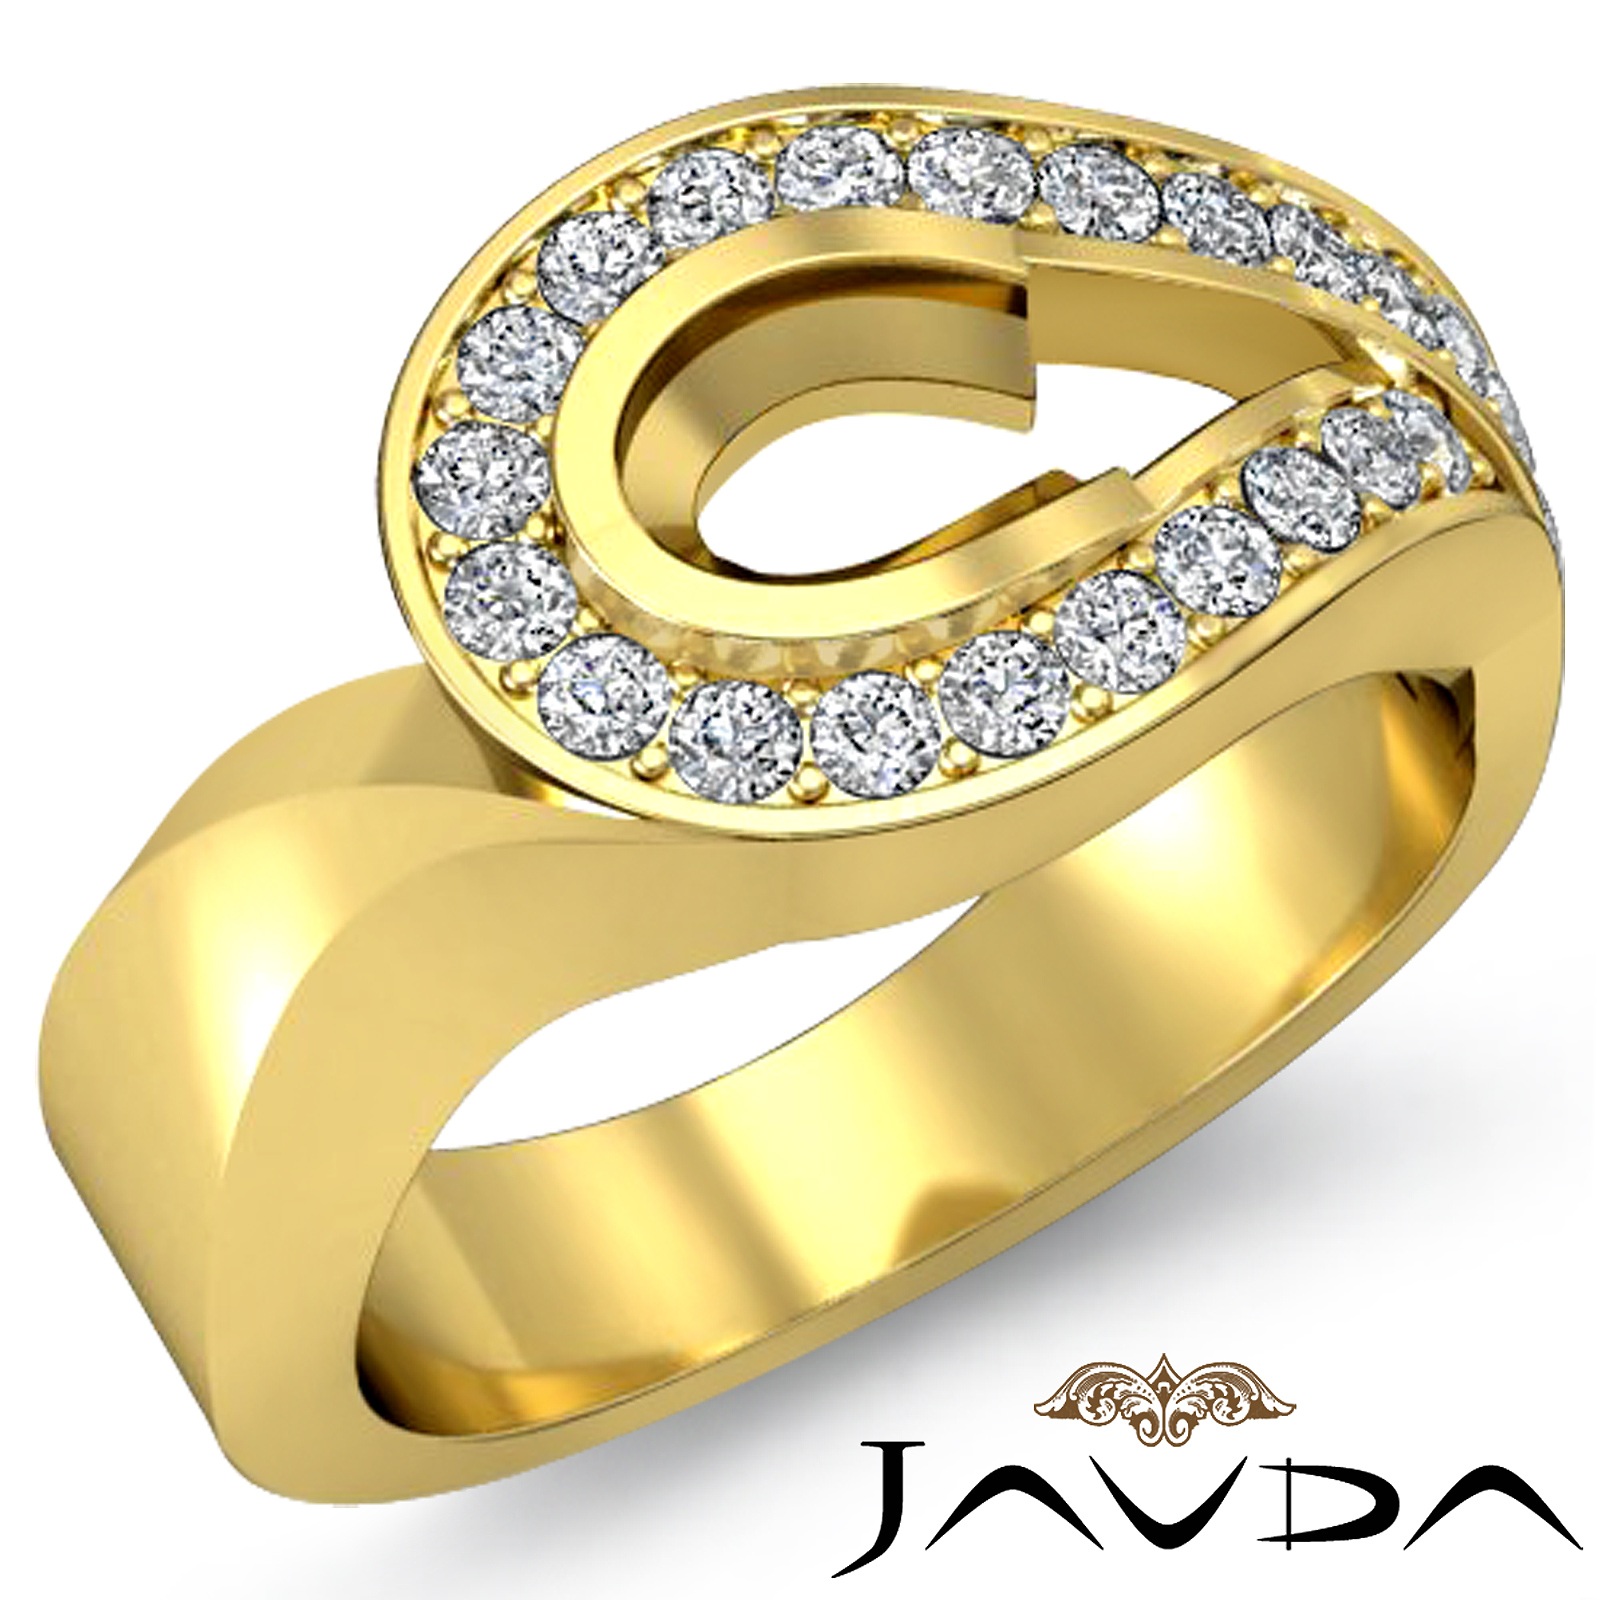 Oval Semi Mount Diamond Engagement Unique Ring 14k Yellow Gold Halo Pave 0 5C